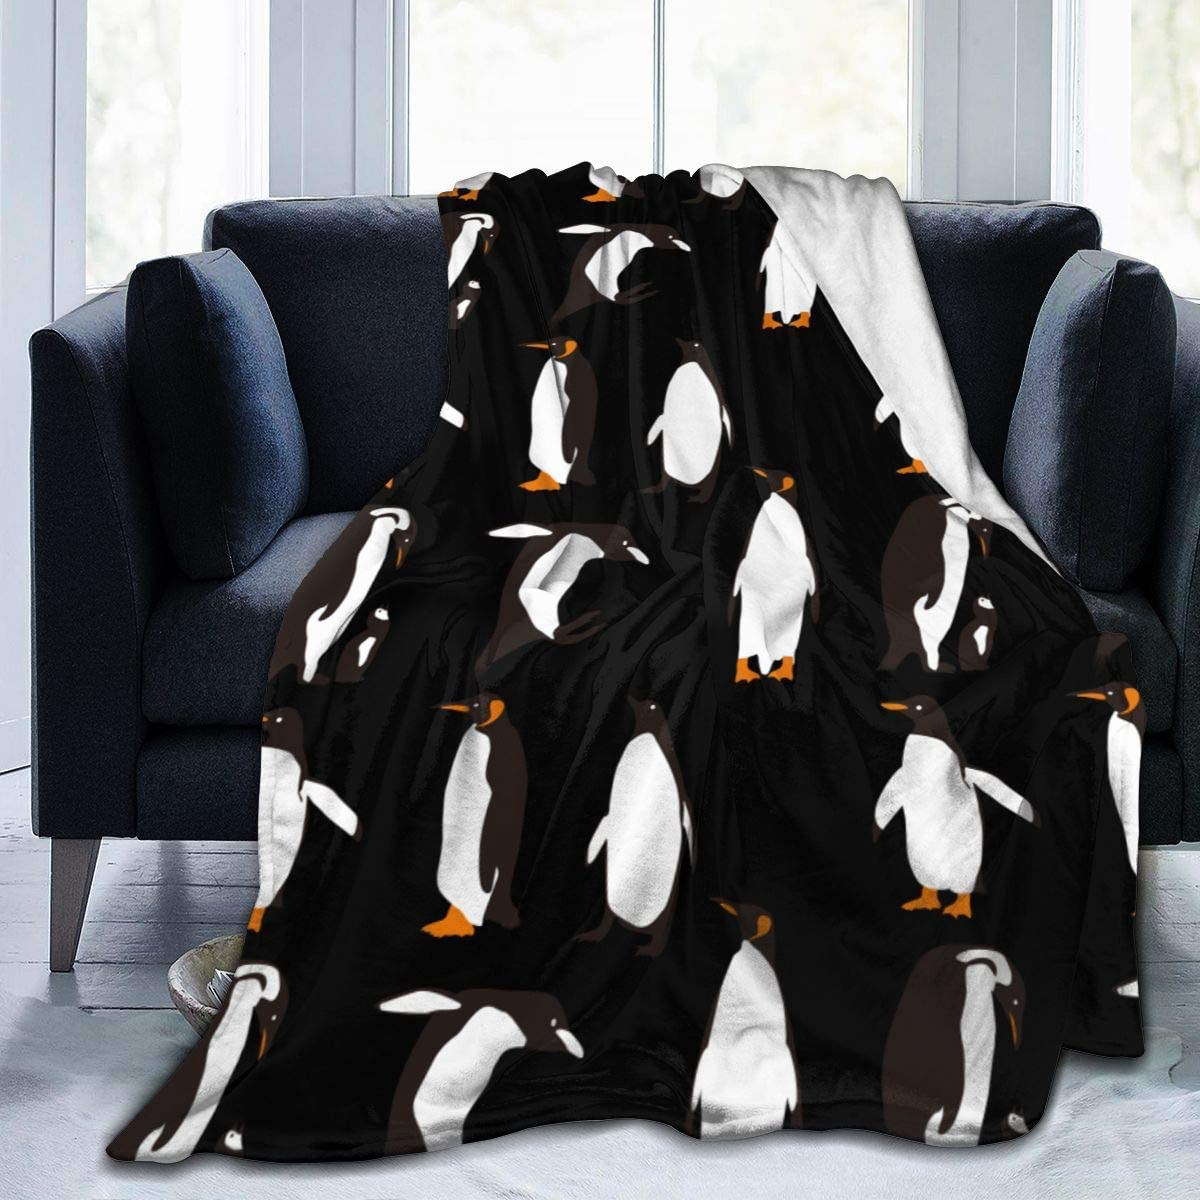 Limited Max 58% OFF price Fuzzy Throw Blanket Plush Fleece Adults for To Blankets Unisex